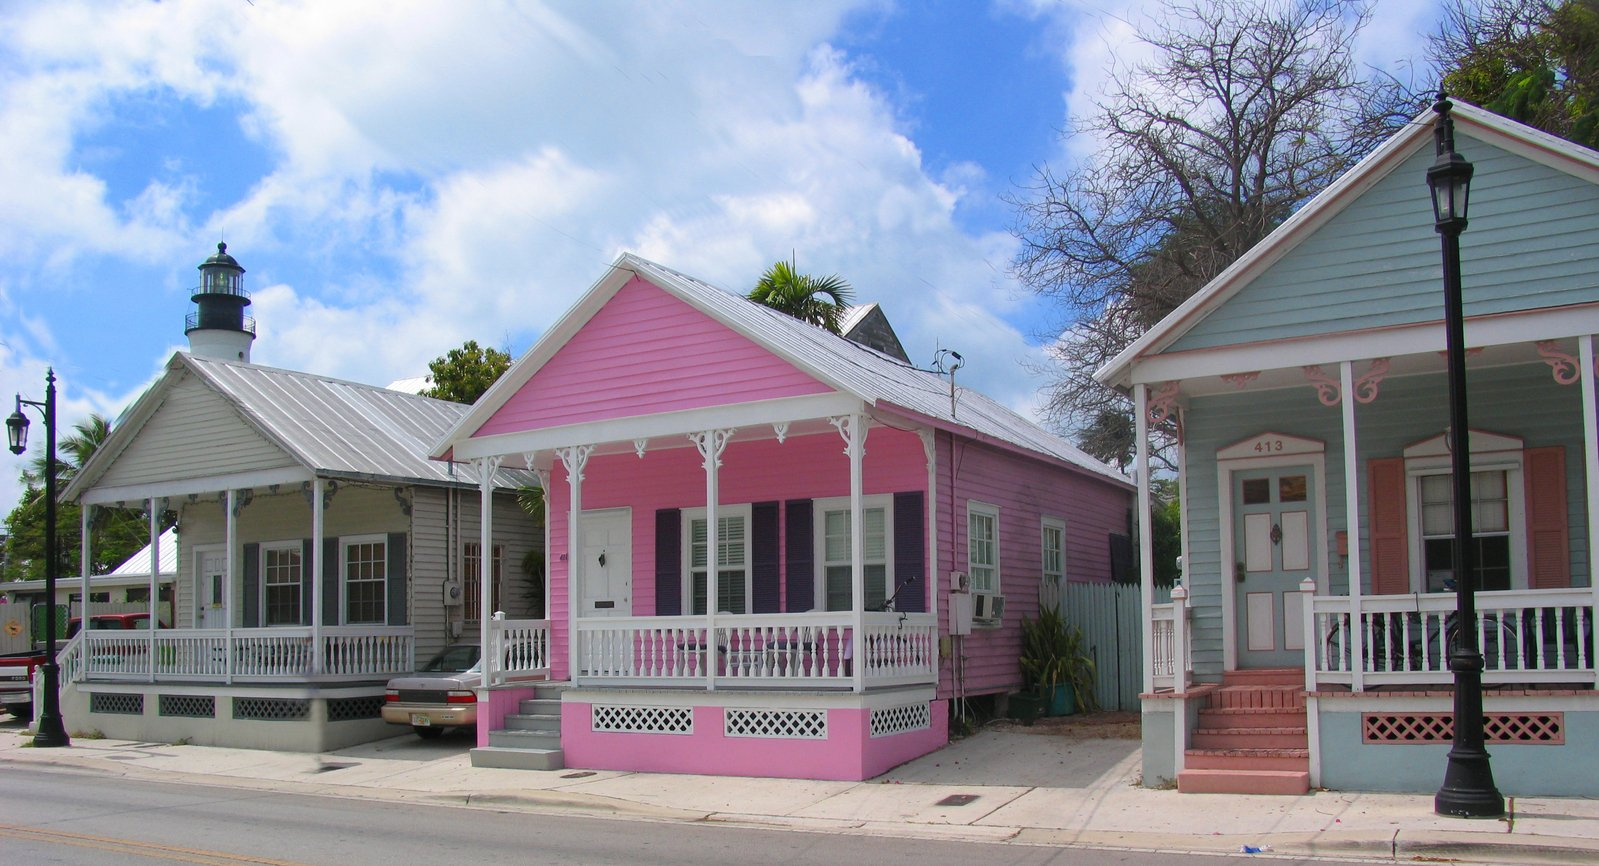 Book your tickets online for the top things to do in Key West, Florida on TripAdvisor: See , traveler reviews and photos of Key West tourist attractions. Find what to do today, this weekend, or in October. We have reviews of the best places to see in Key West. Visit top-rated & must-see attractions.